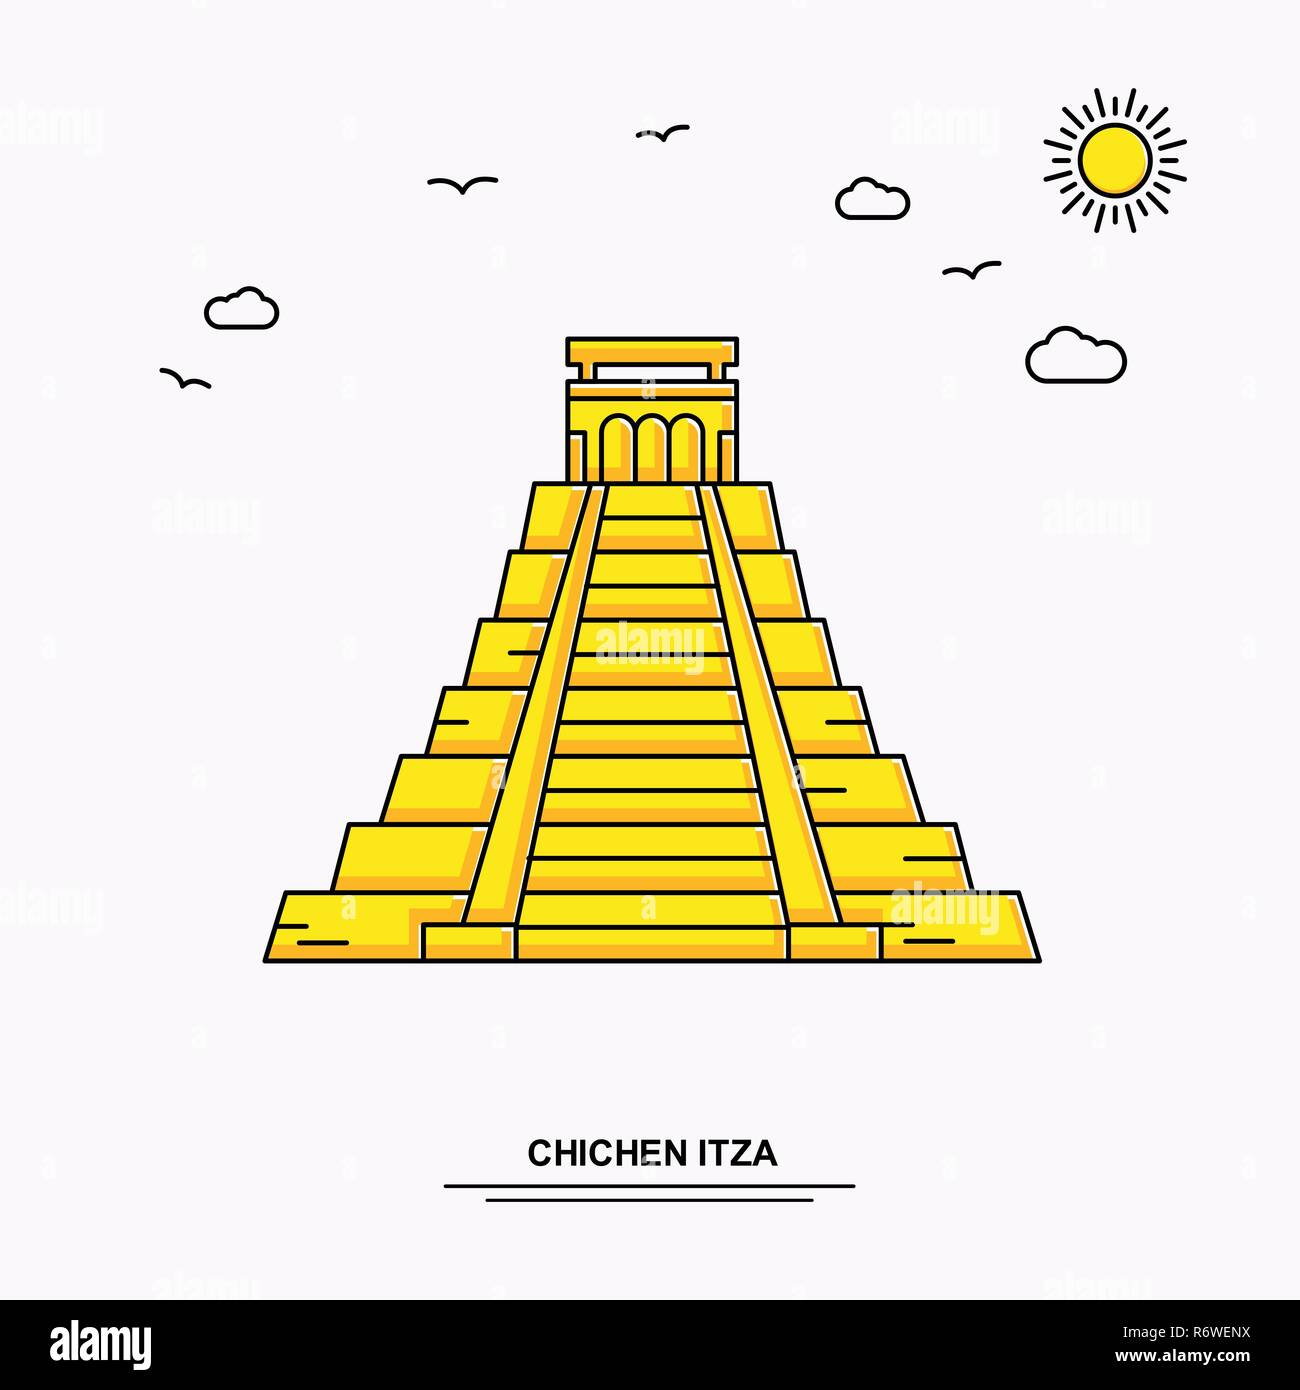 CHICHEN ITZA Monument Poster Template. World Travel Yellow illustration Background in Line Style with beauture nature Scene - Stock Image